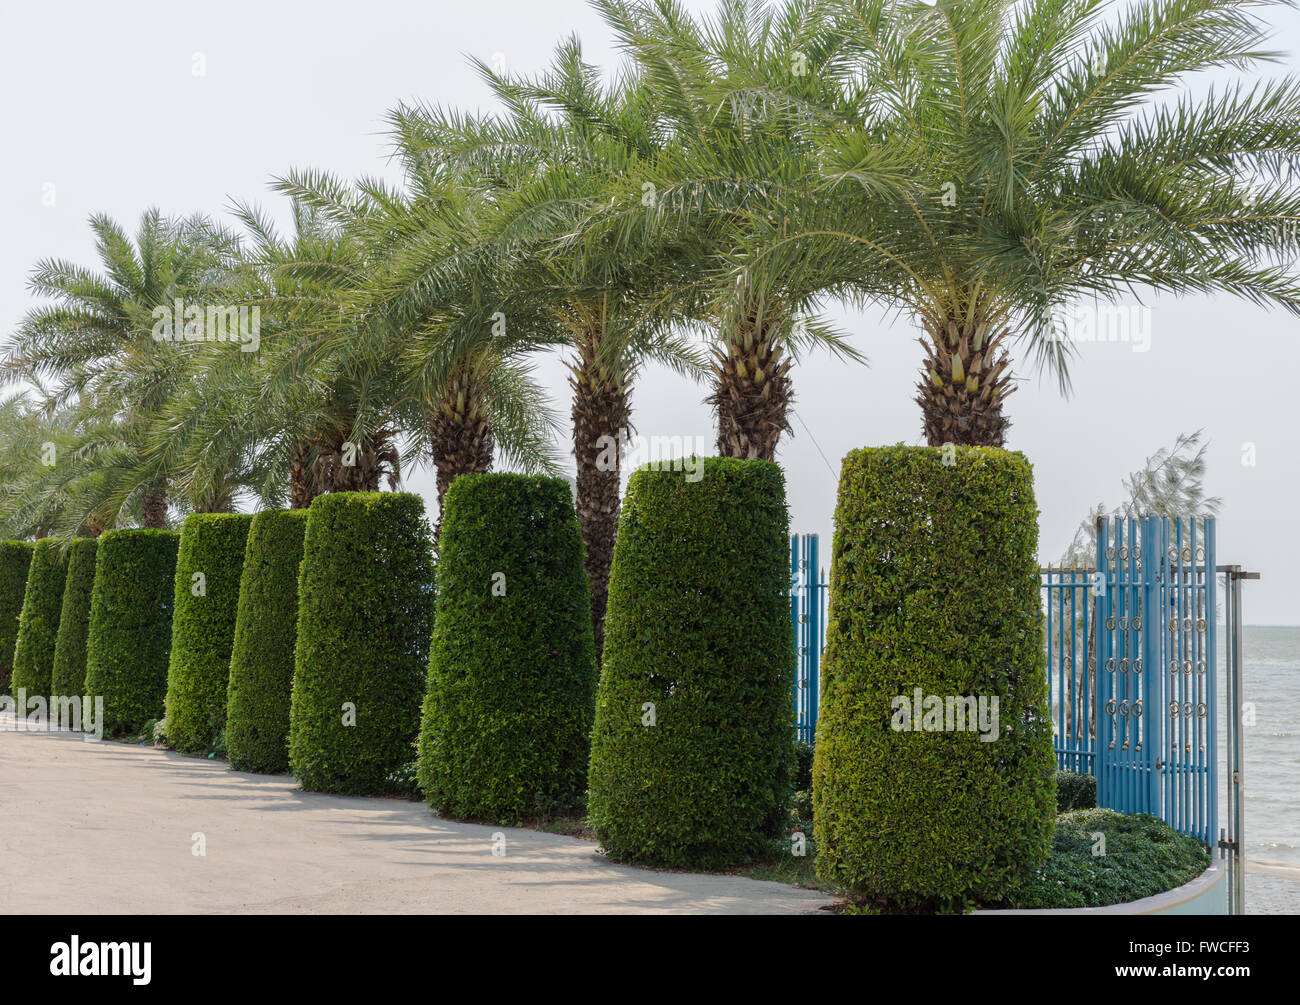 palm trees and hedges - Stock Image